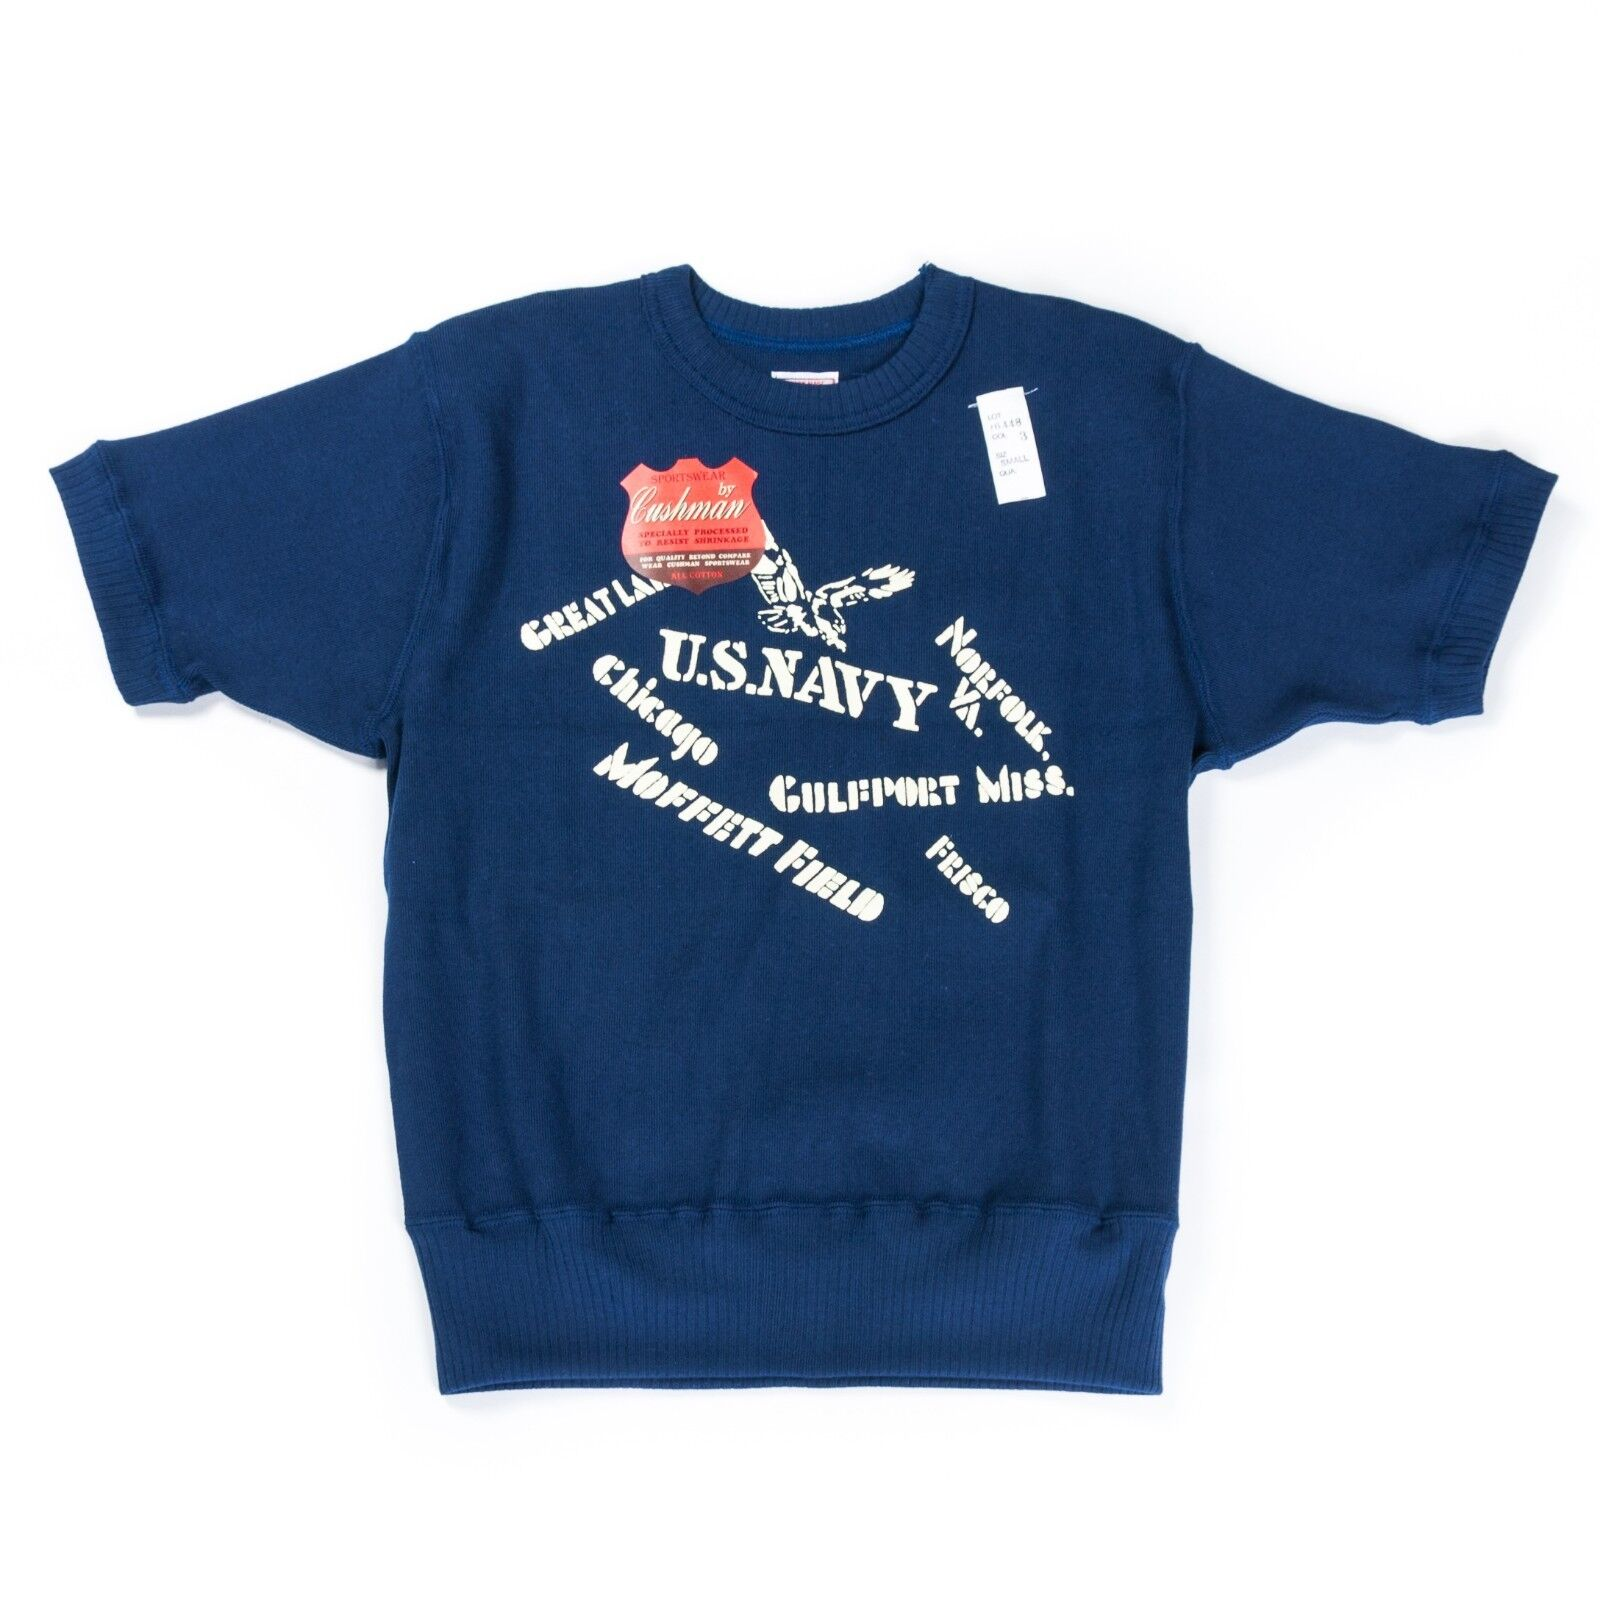 NEW Cushman US Military Heavy Tee Navy Made in Japan Vintage Style